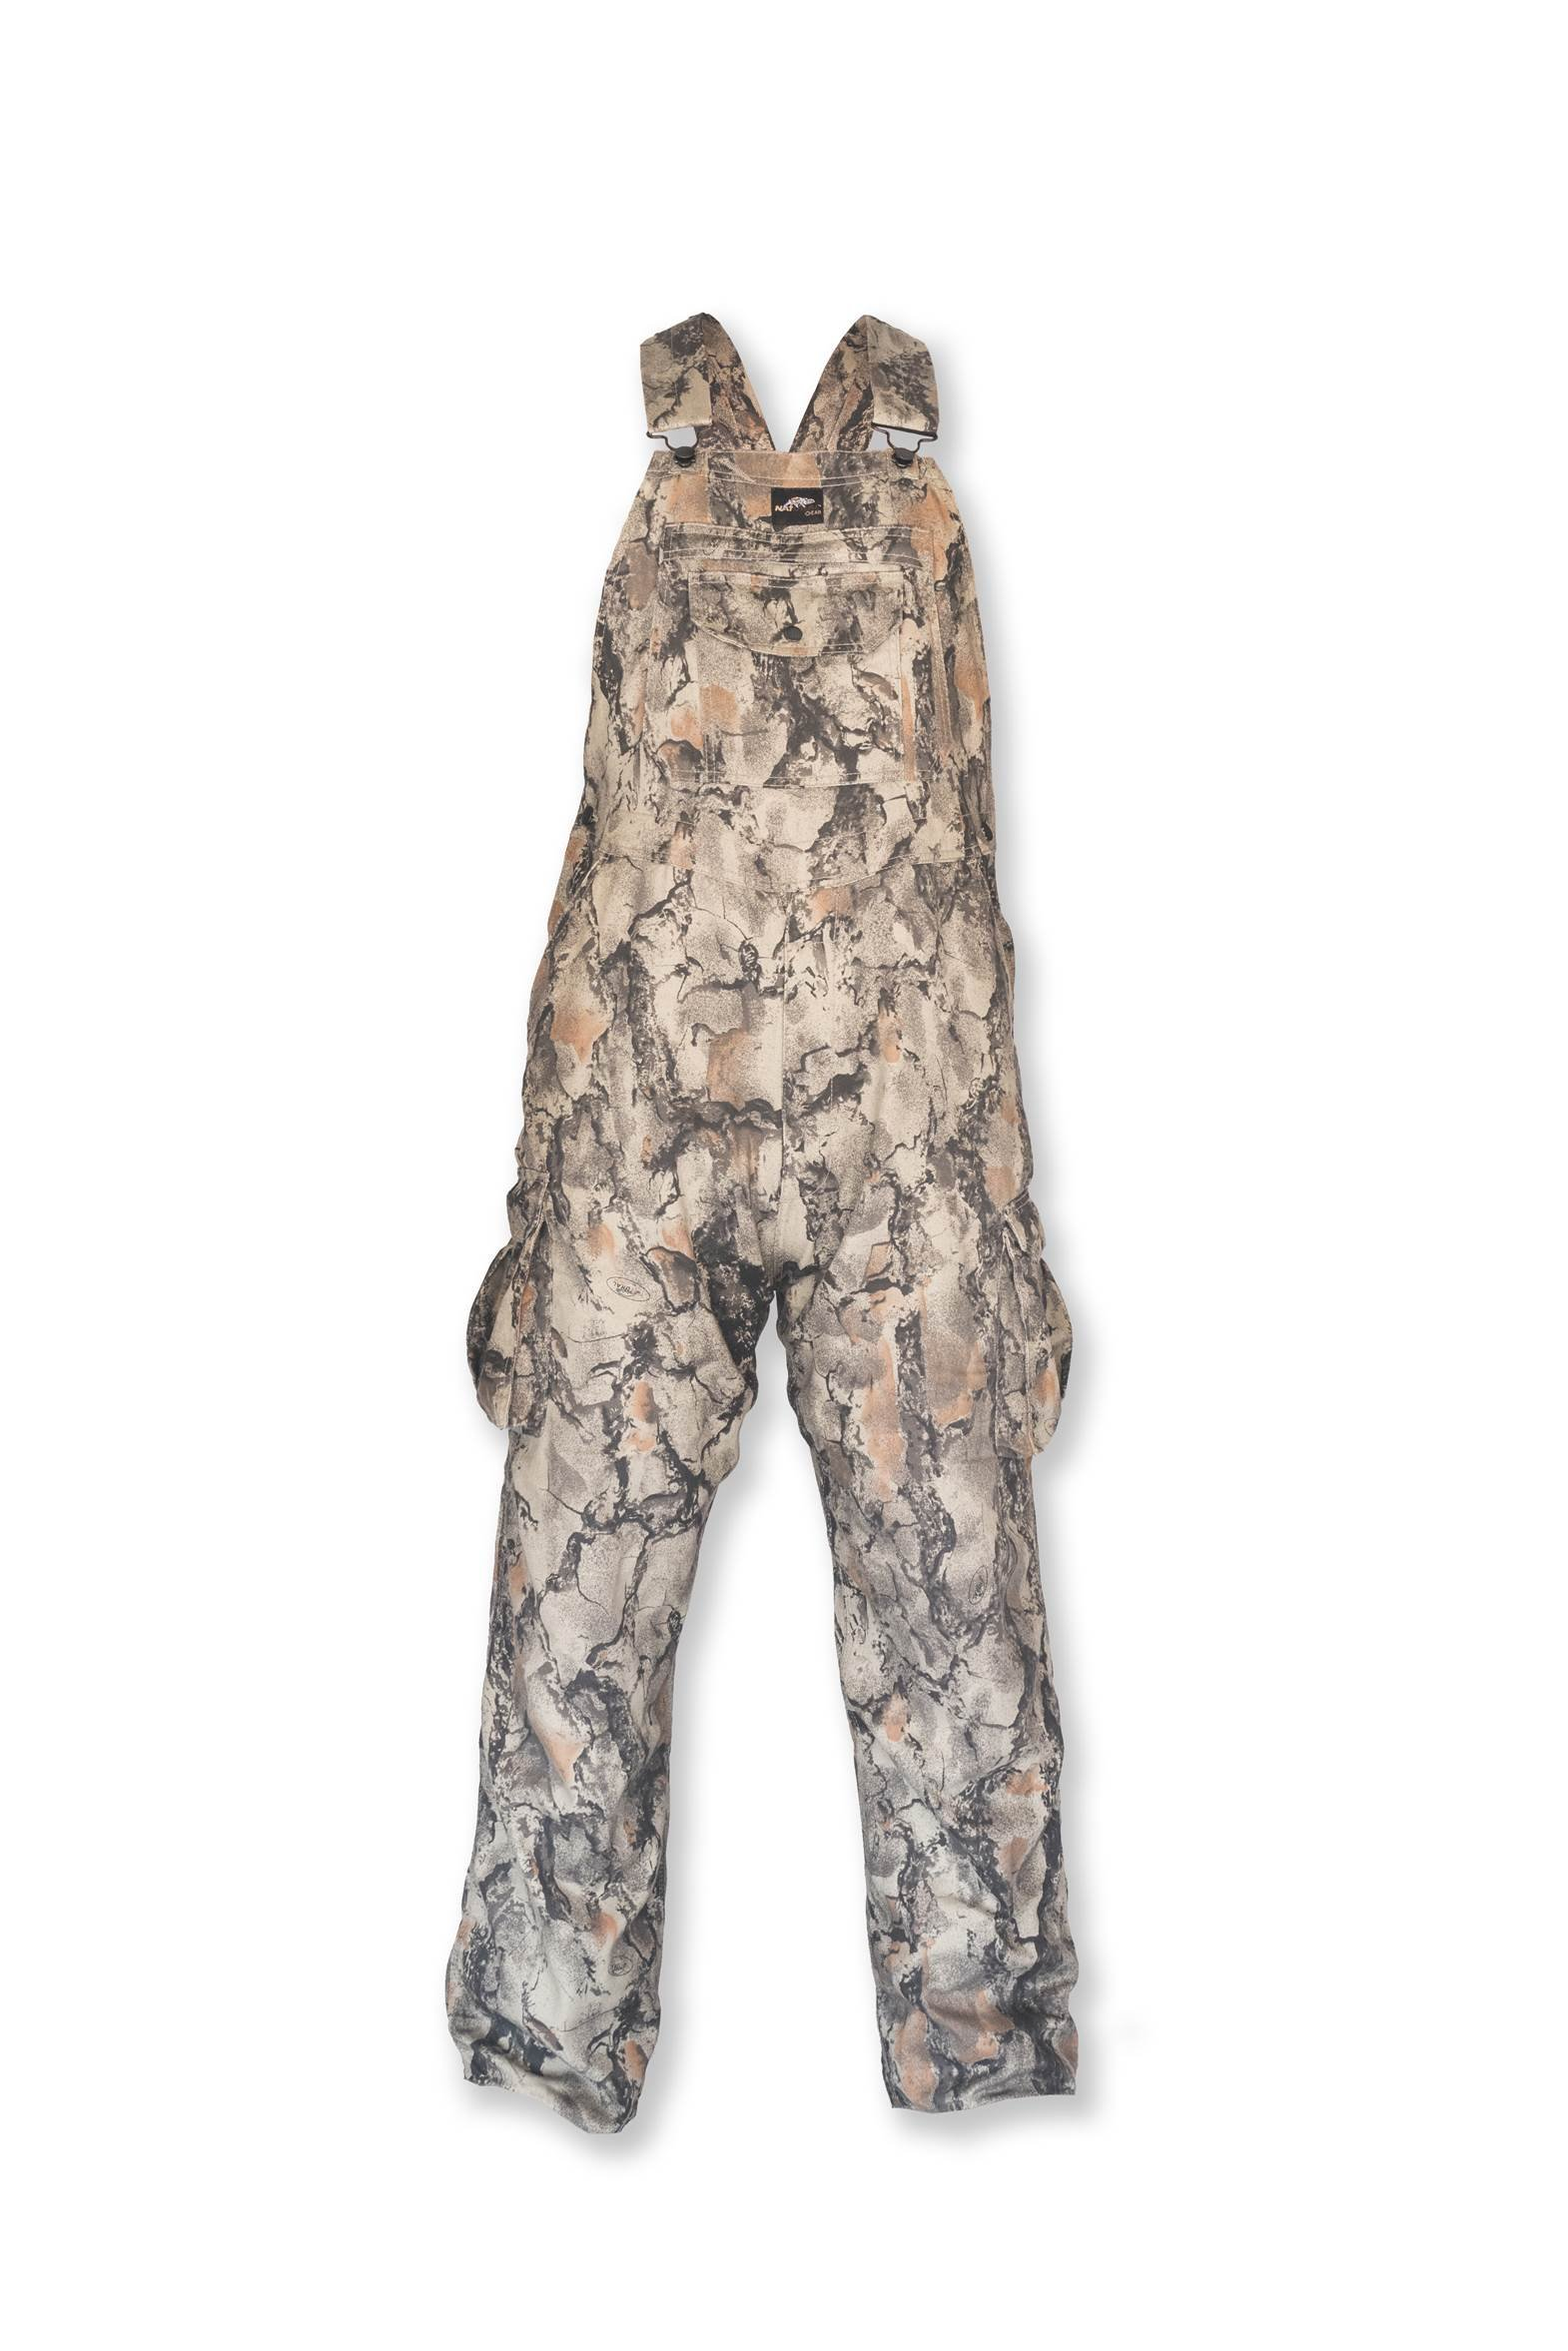 Natural Gear Camouflage Bib Overall for Men and Women, Non-Insulated, Cotton Poly Blend Hunting Coveralls for Warm Weather (XXL) by Natural Gear